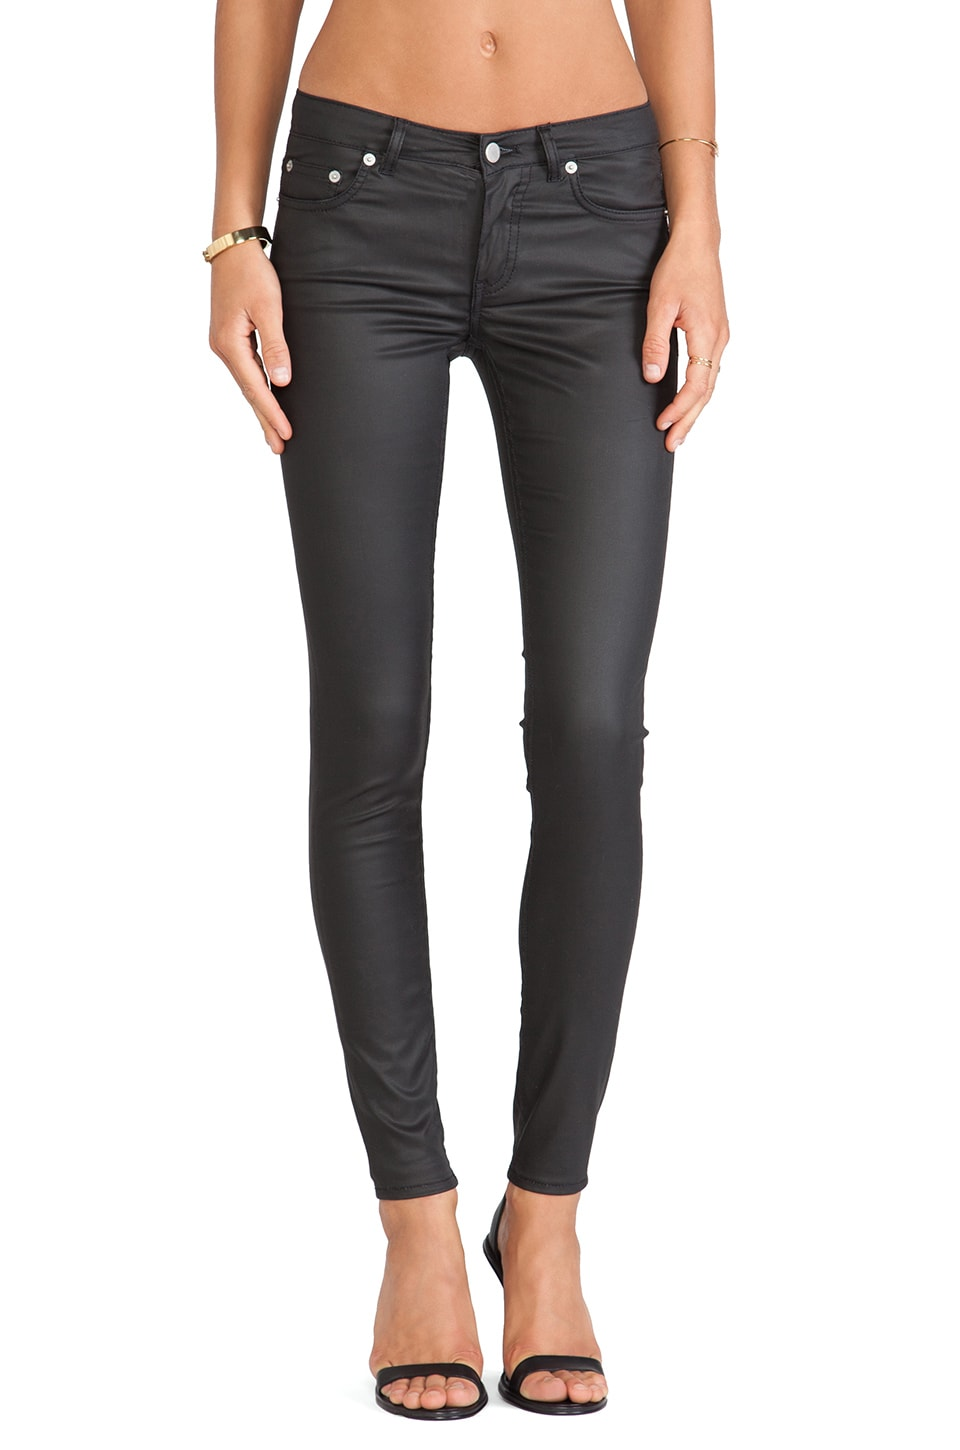 BLK DNM Jeans 26 in Empire Black